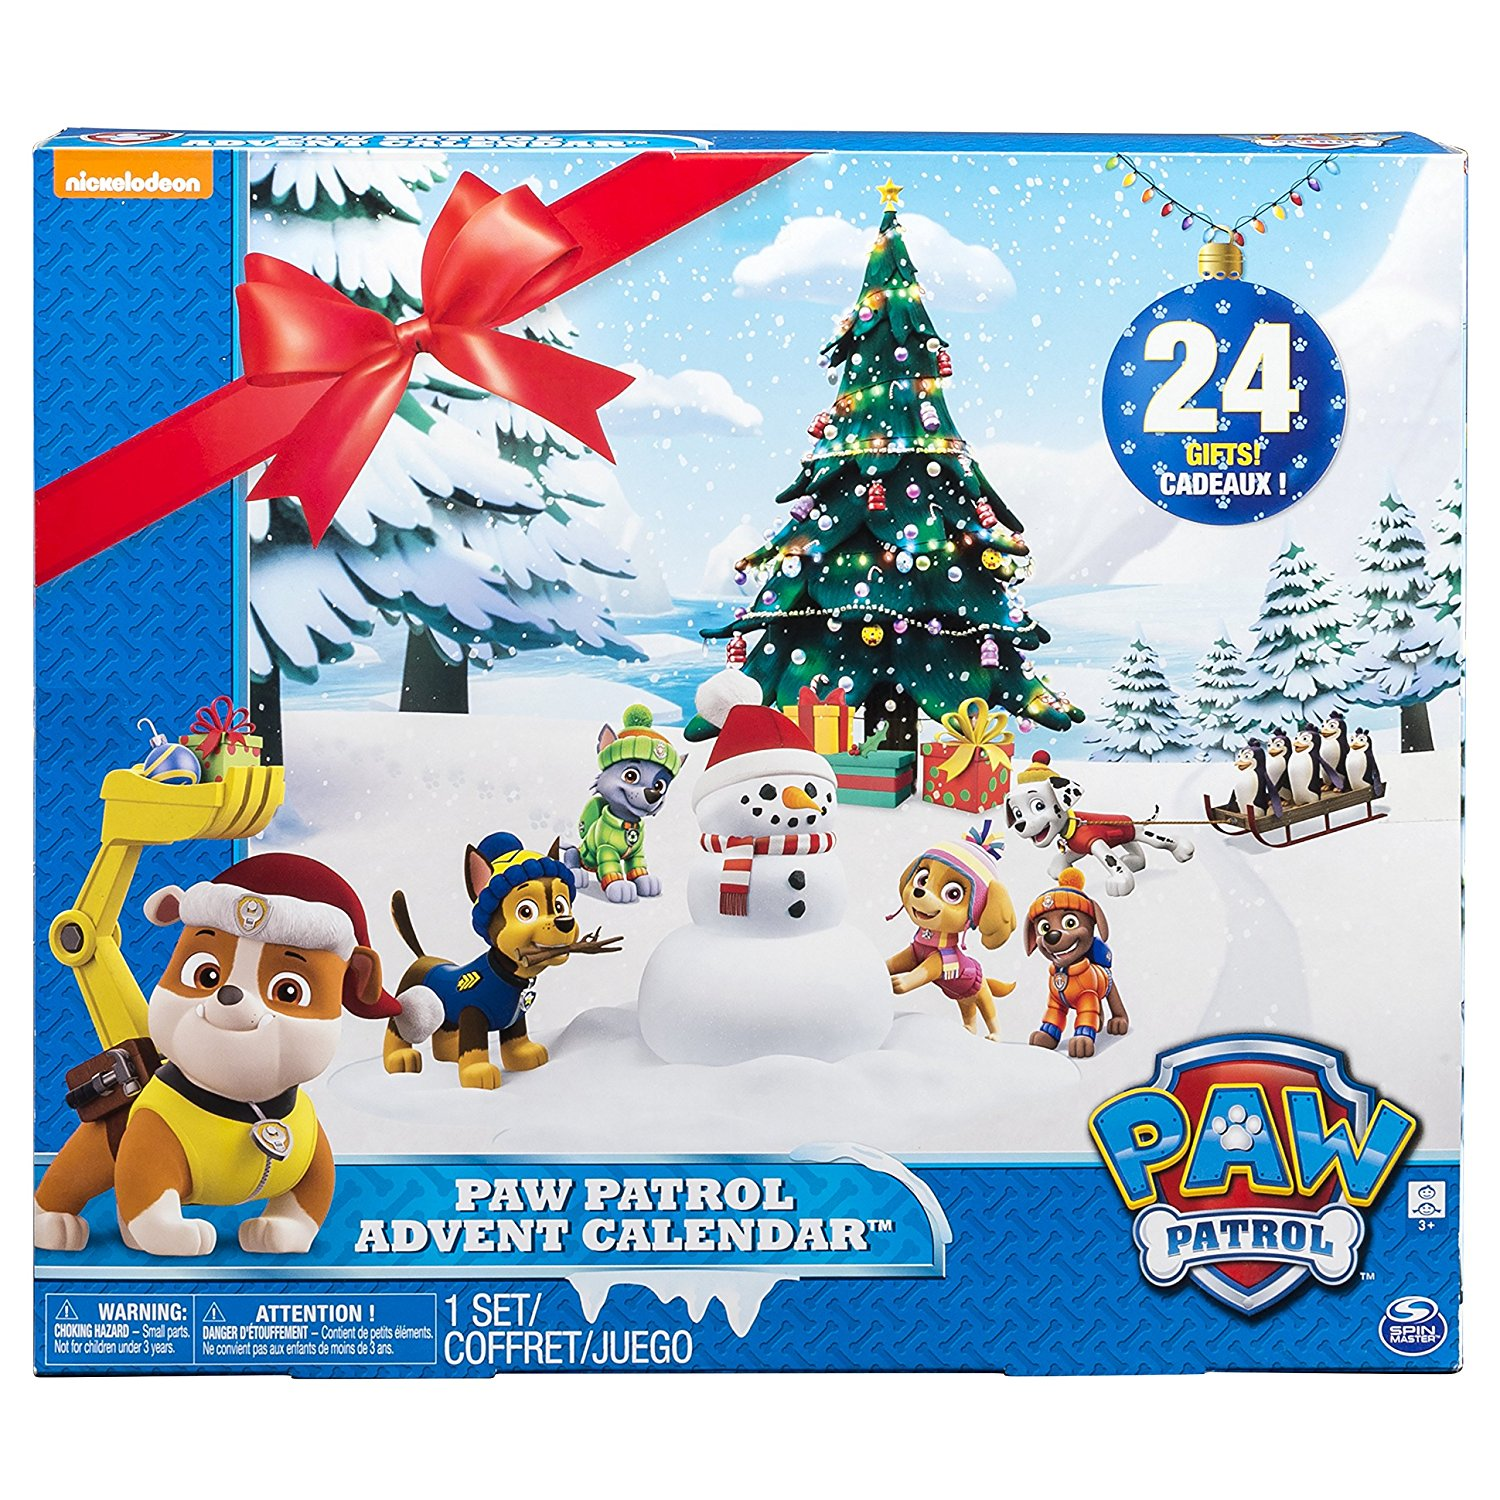 adventskalender für kinder elsa adventskalender paw patrol frozen adventskalender frozen 1